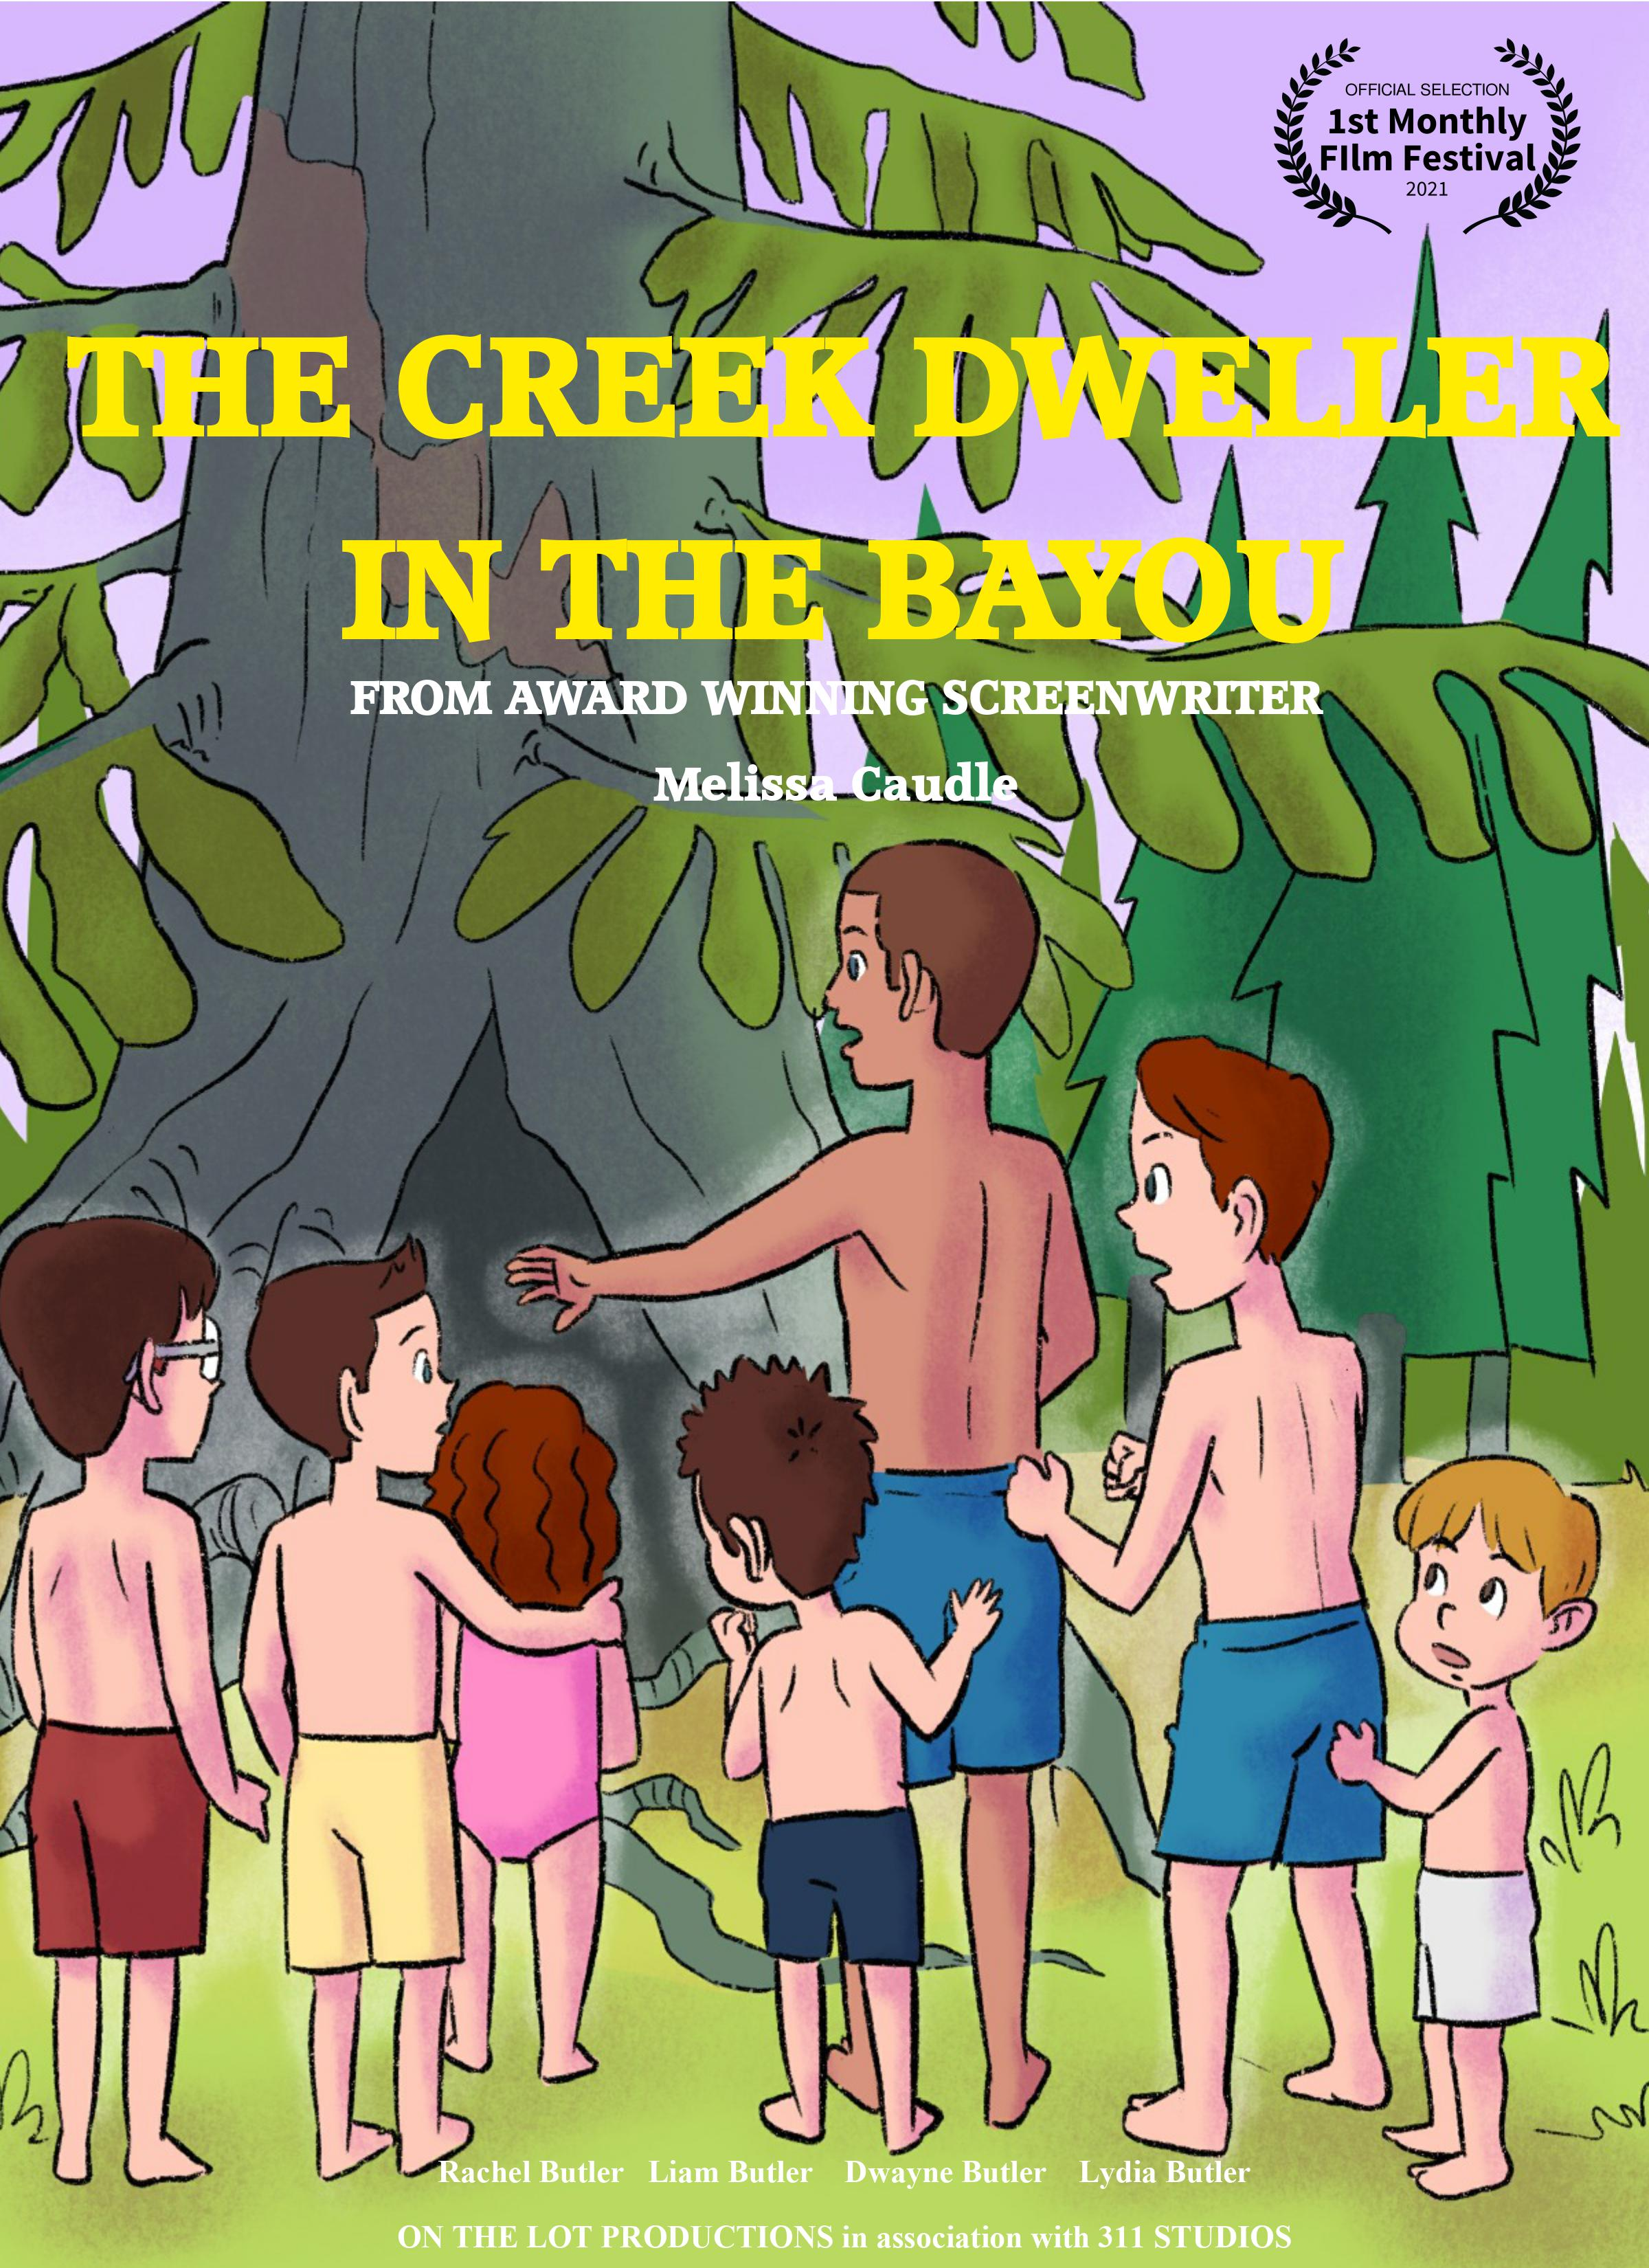 """Author and Screenwriter Dr. Melissa Caudle's Script """"The Creek Dweller in the Bayou"""" Wins at the 1st Monthly Film Festival for Animation Script"""